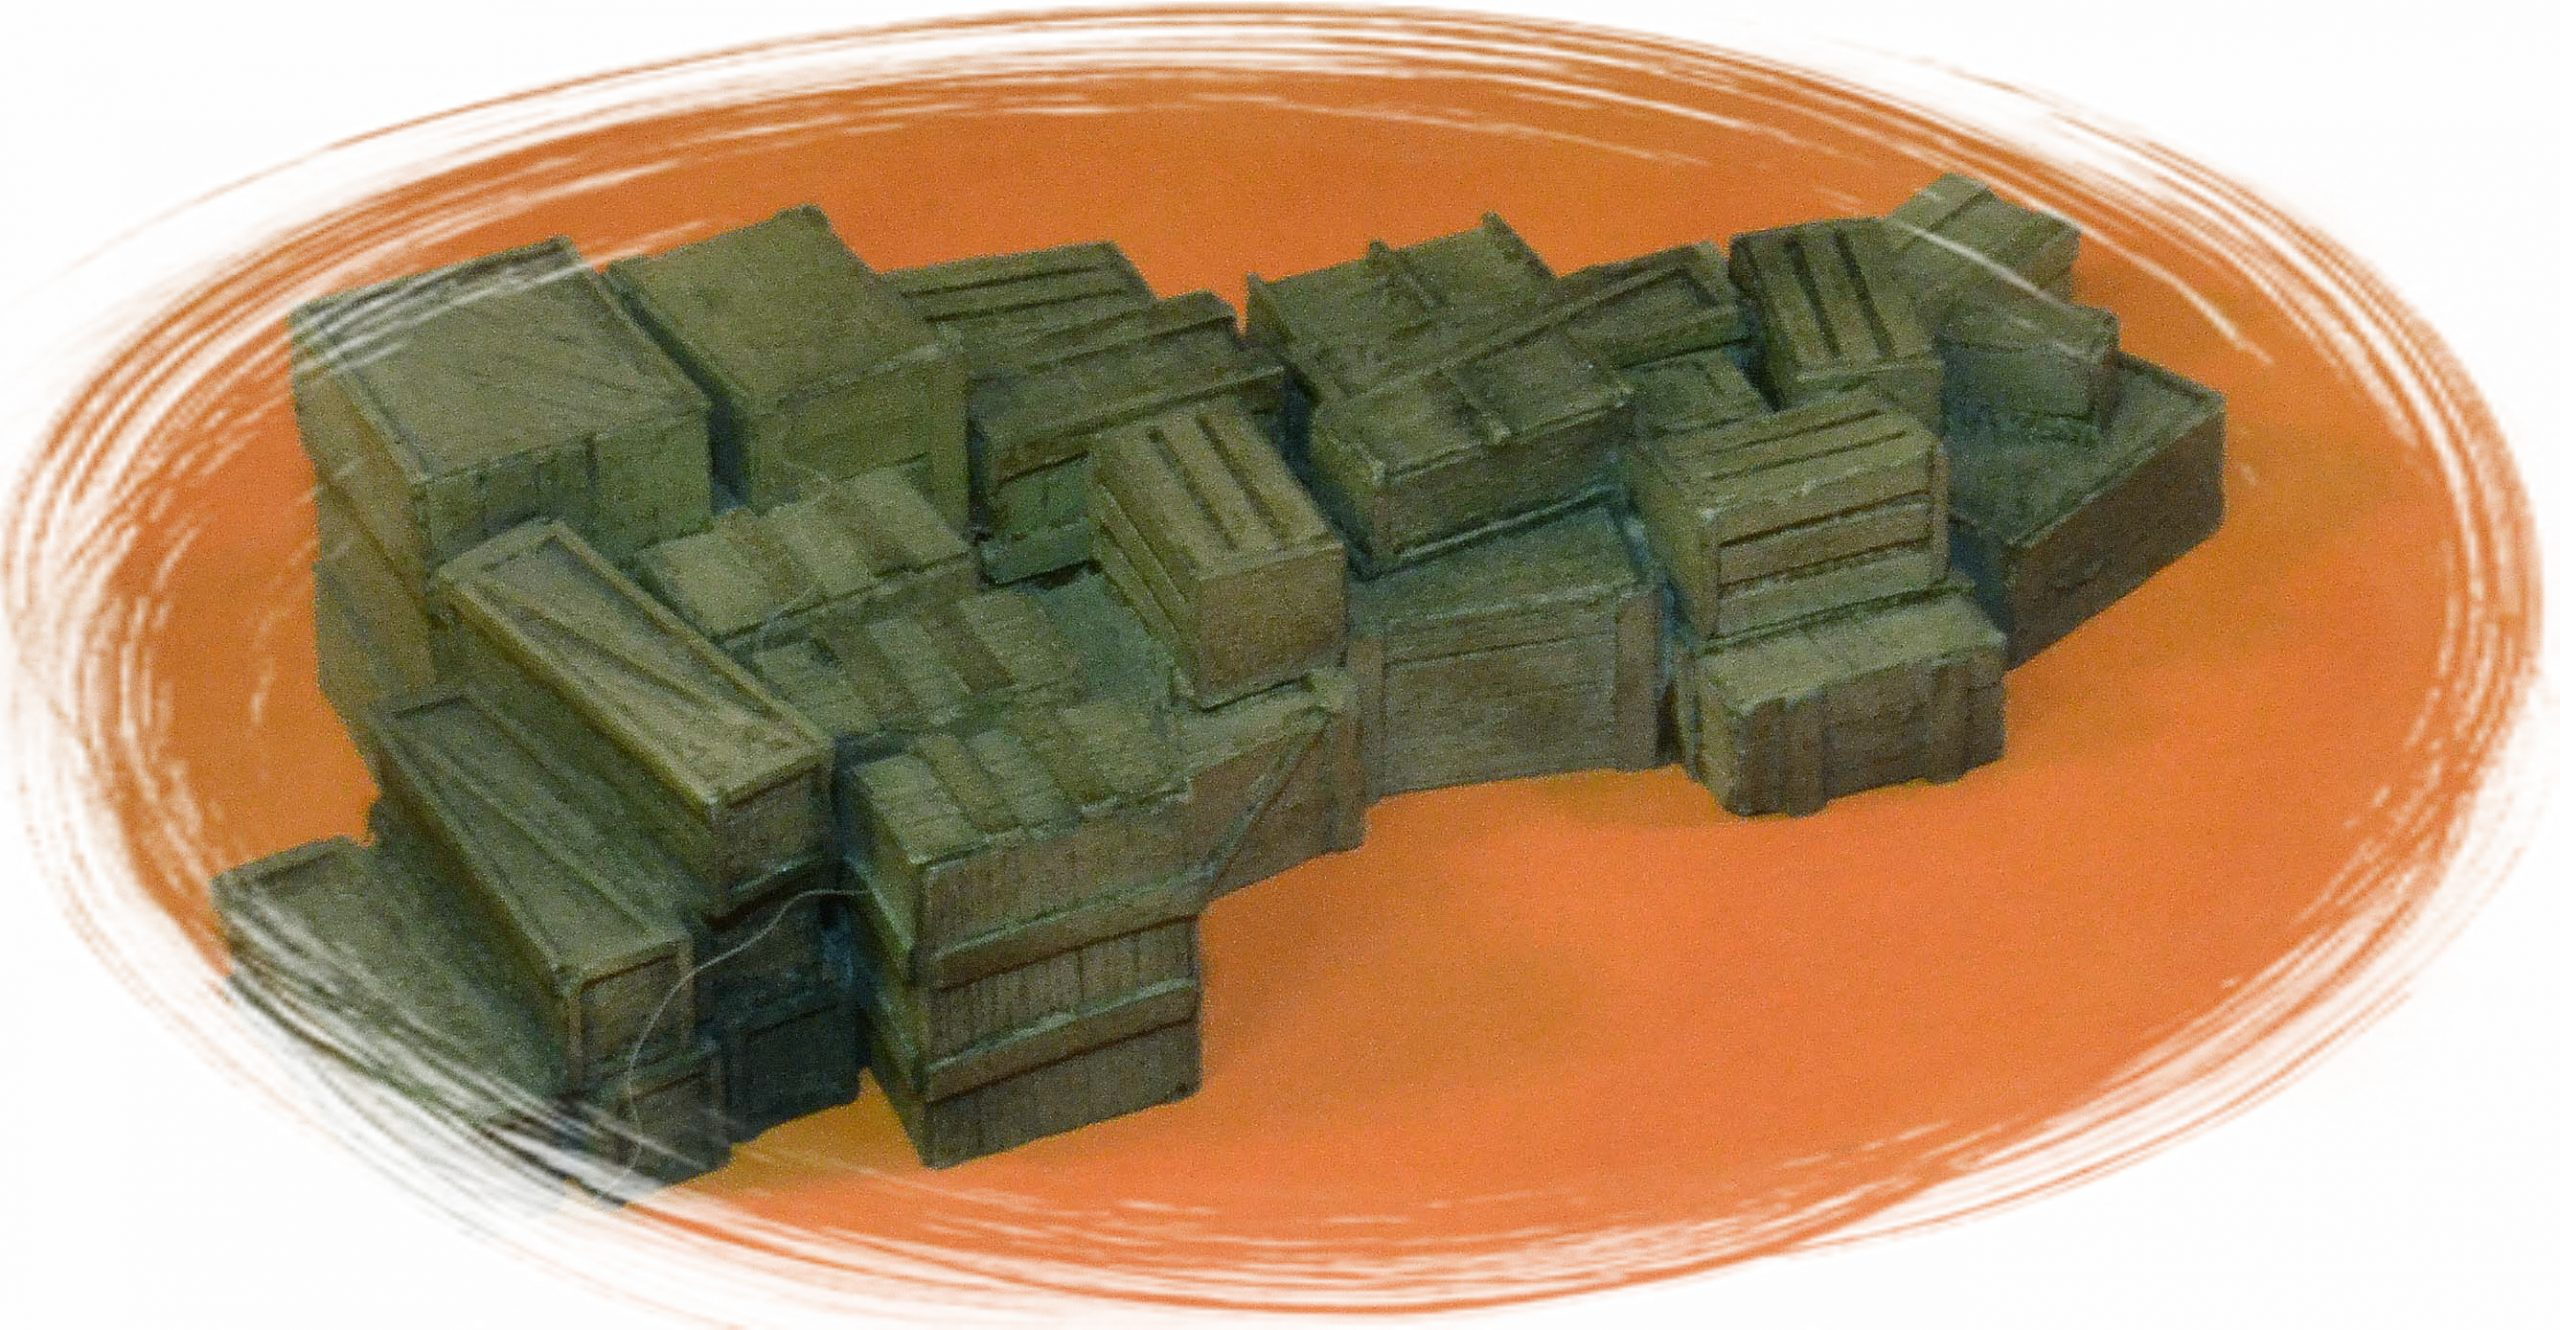 Large_Crate_Stack (O)